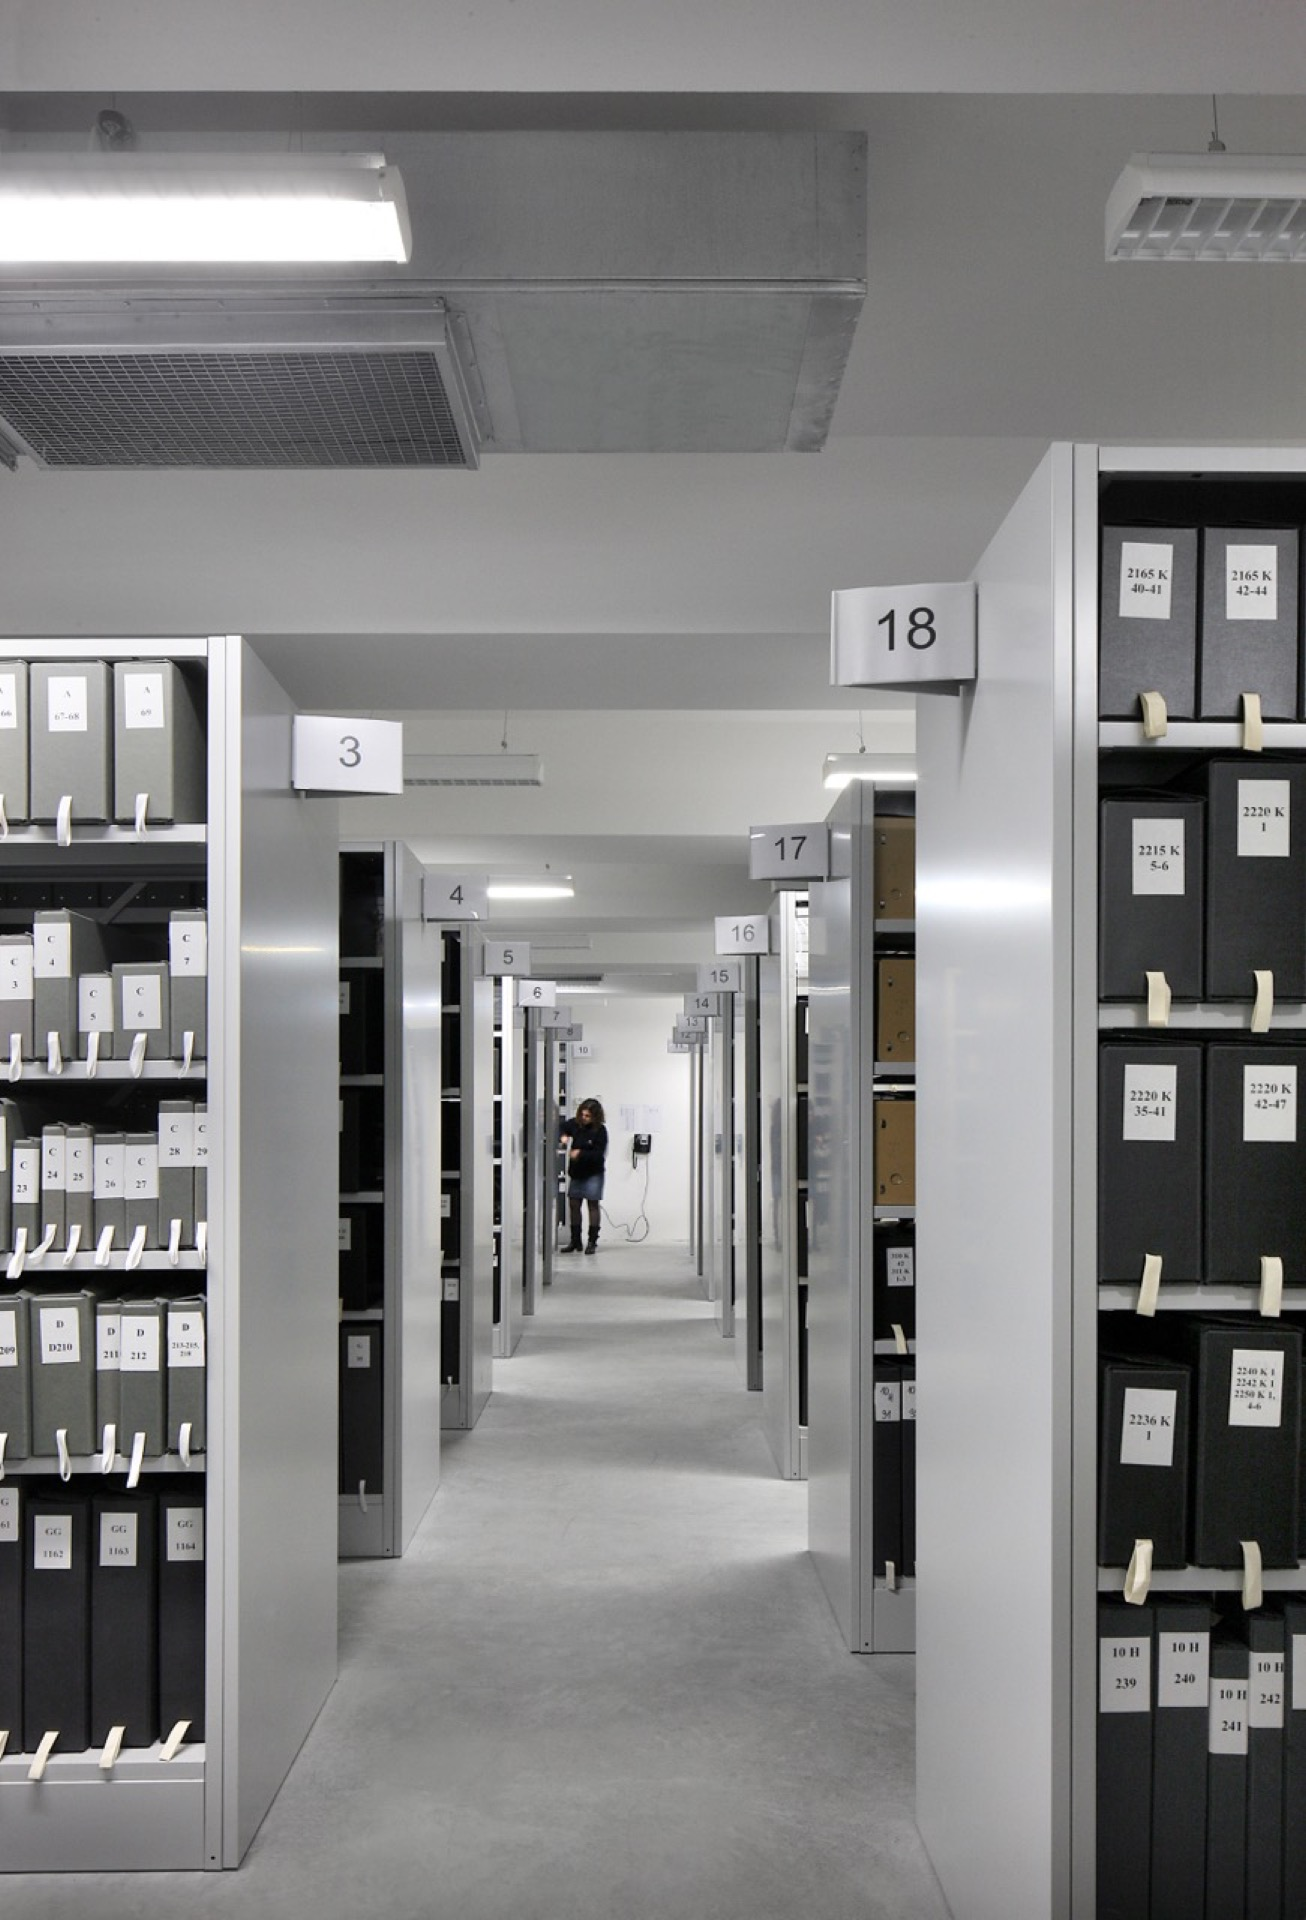 Archives Bordeaux archive building architecture design interior view